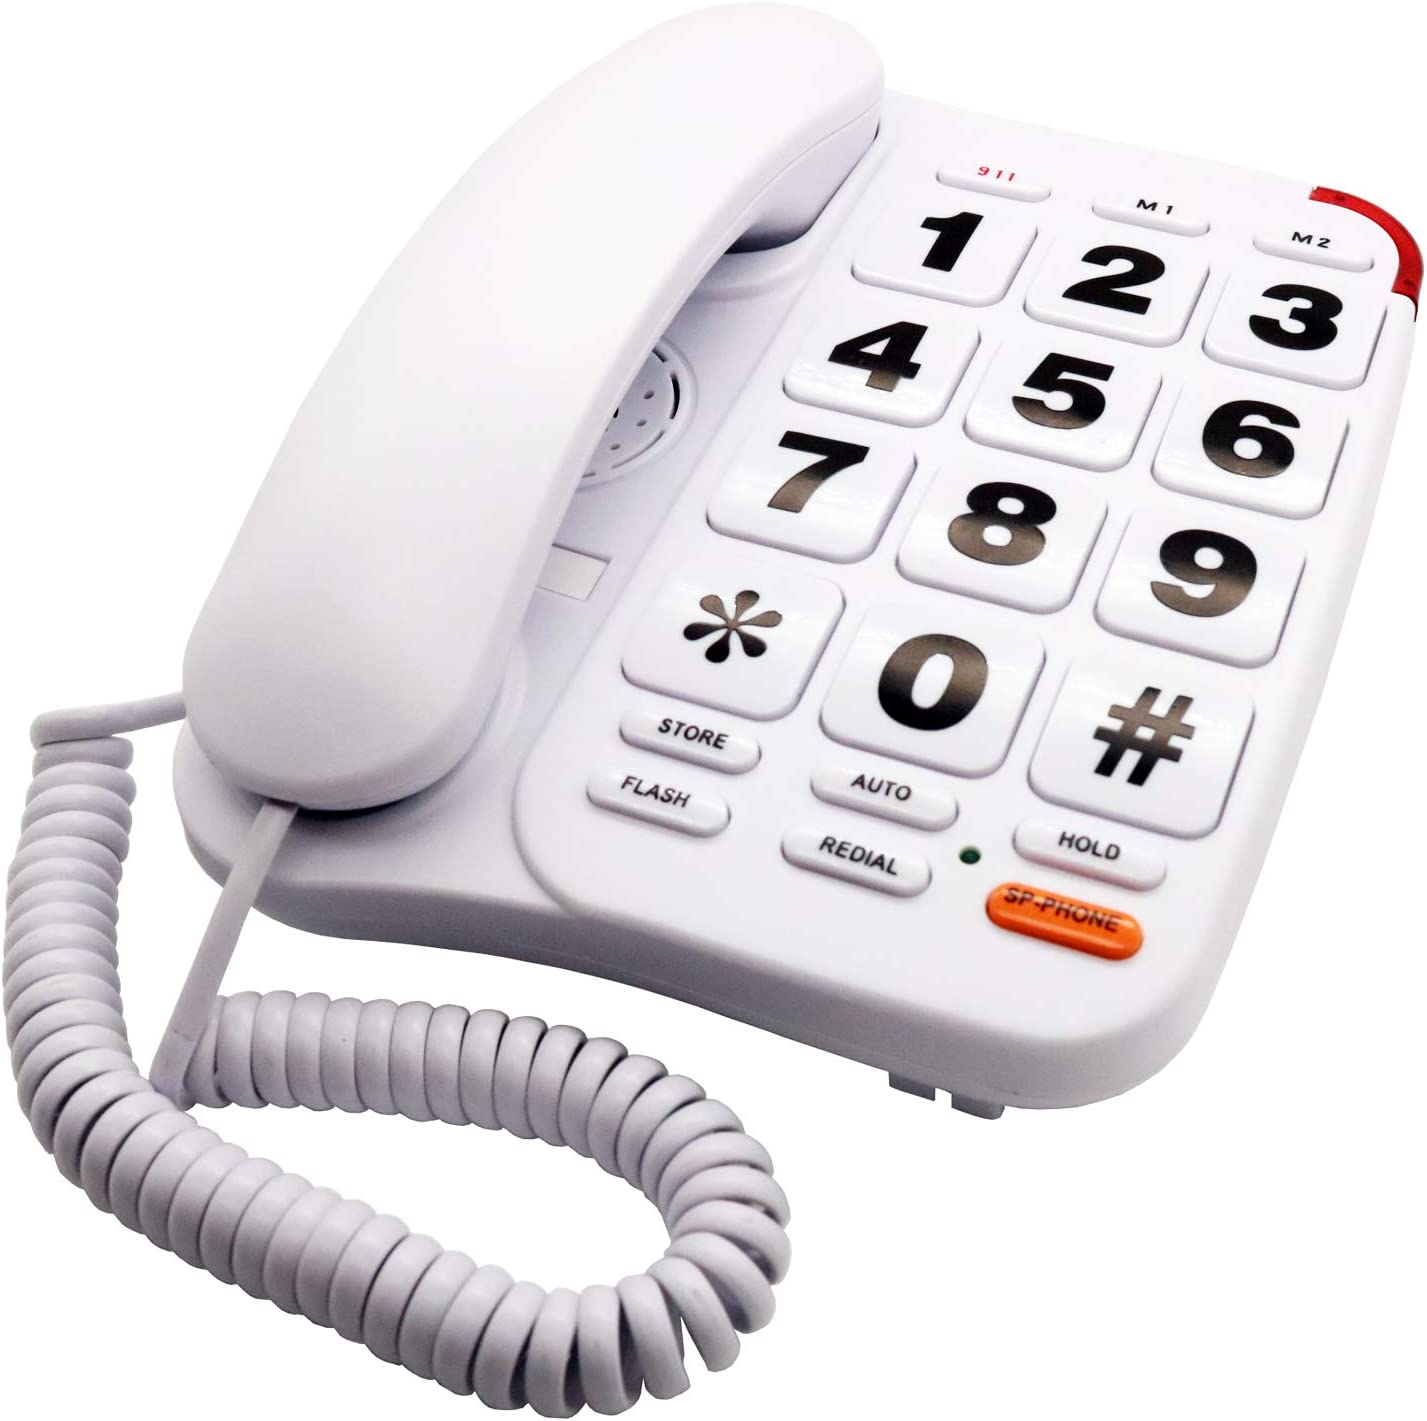 KerLiTar K-P046W Amplified Phones for Seniors with Extra Large Buttons Telephones Landline Corded Phones for Elderly with Loud Speakerphone SOS Emergency Speed Dial Wall Phones